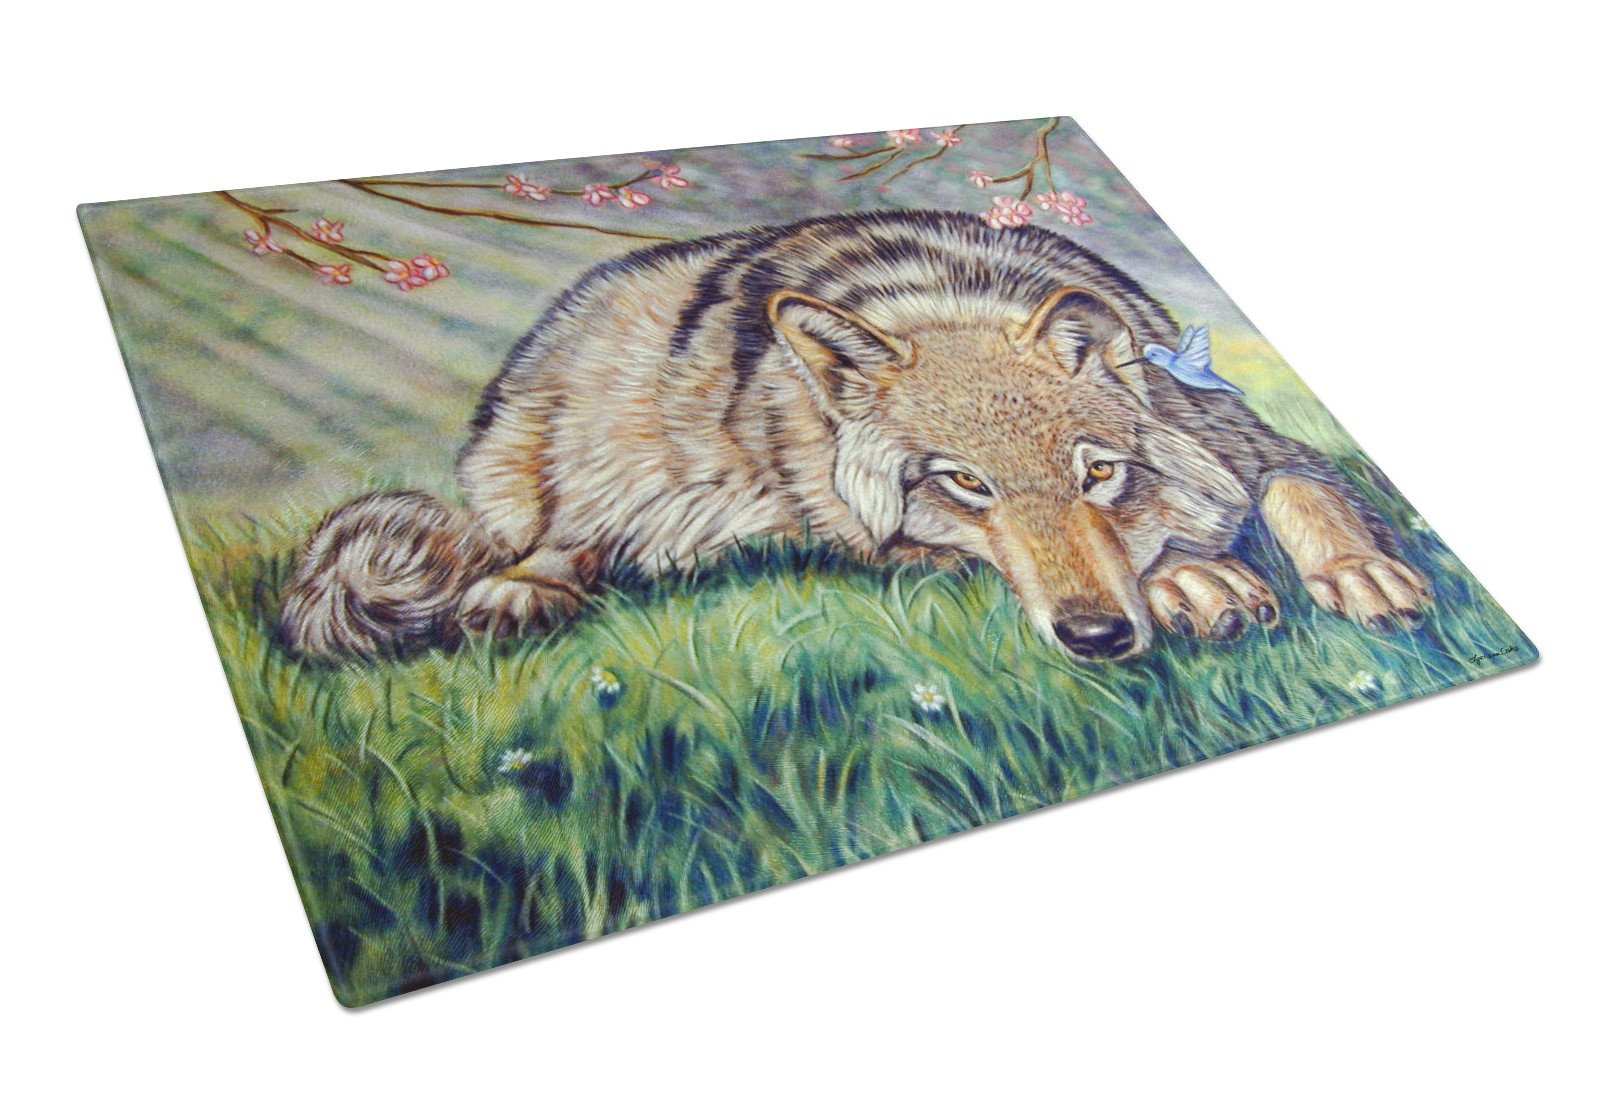 Wolf and Hummingbird Glass Cutting Board Large 7356LCB by Caroline's Treasures